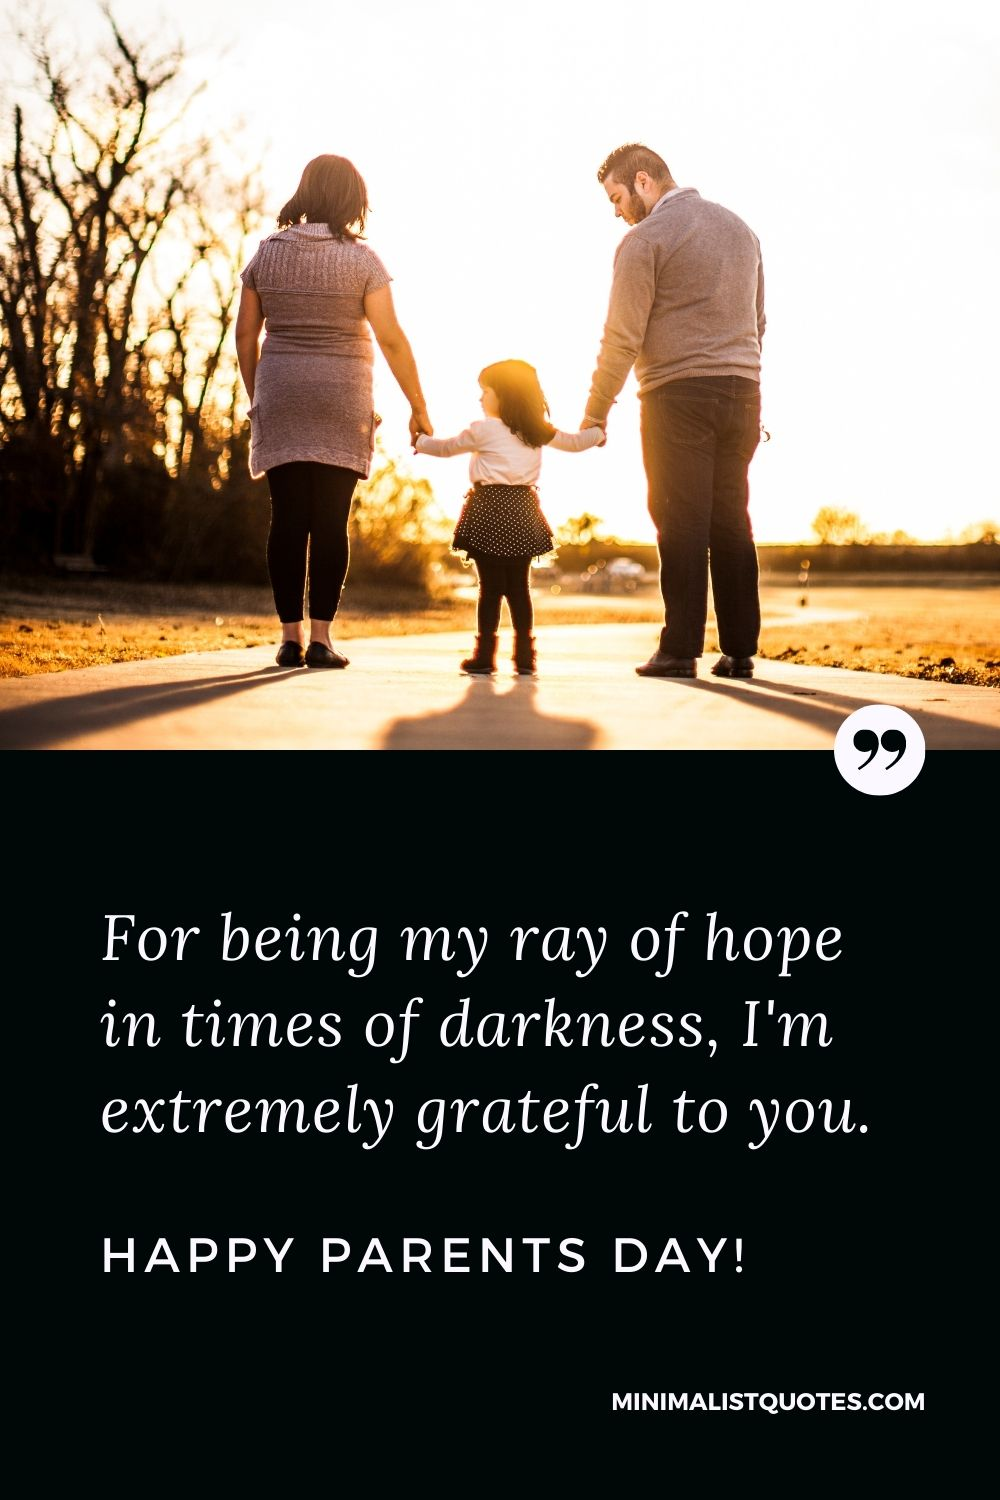 Parents Day Quote, Wish & Message With Image: For being my ray of hope in times of darkness, I'm extremely grateful to you. Happy Parent's Day!